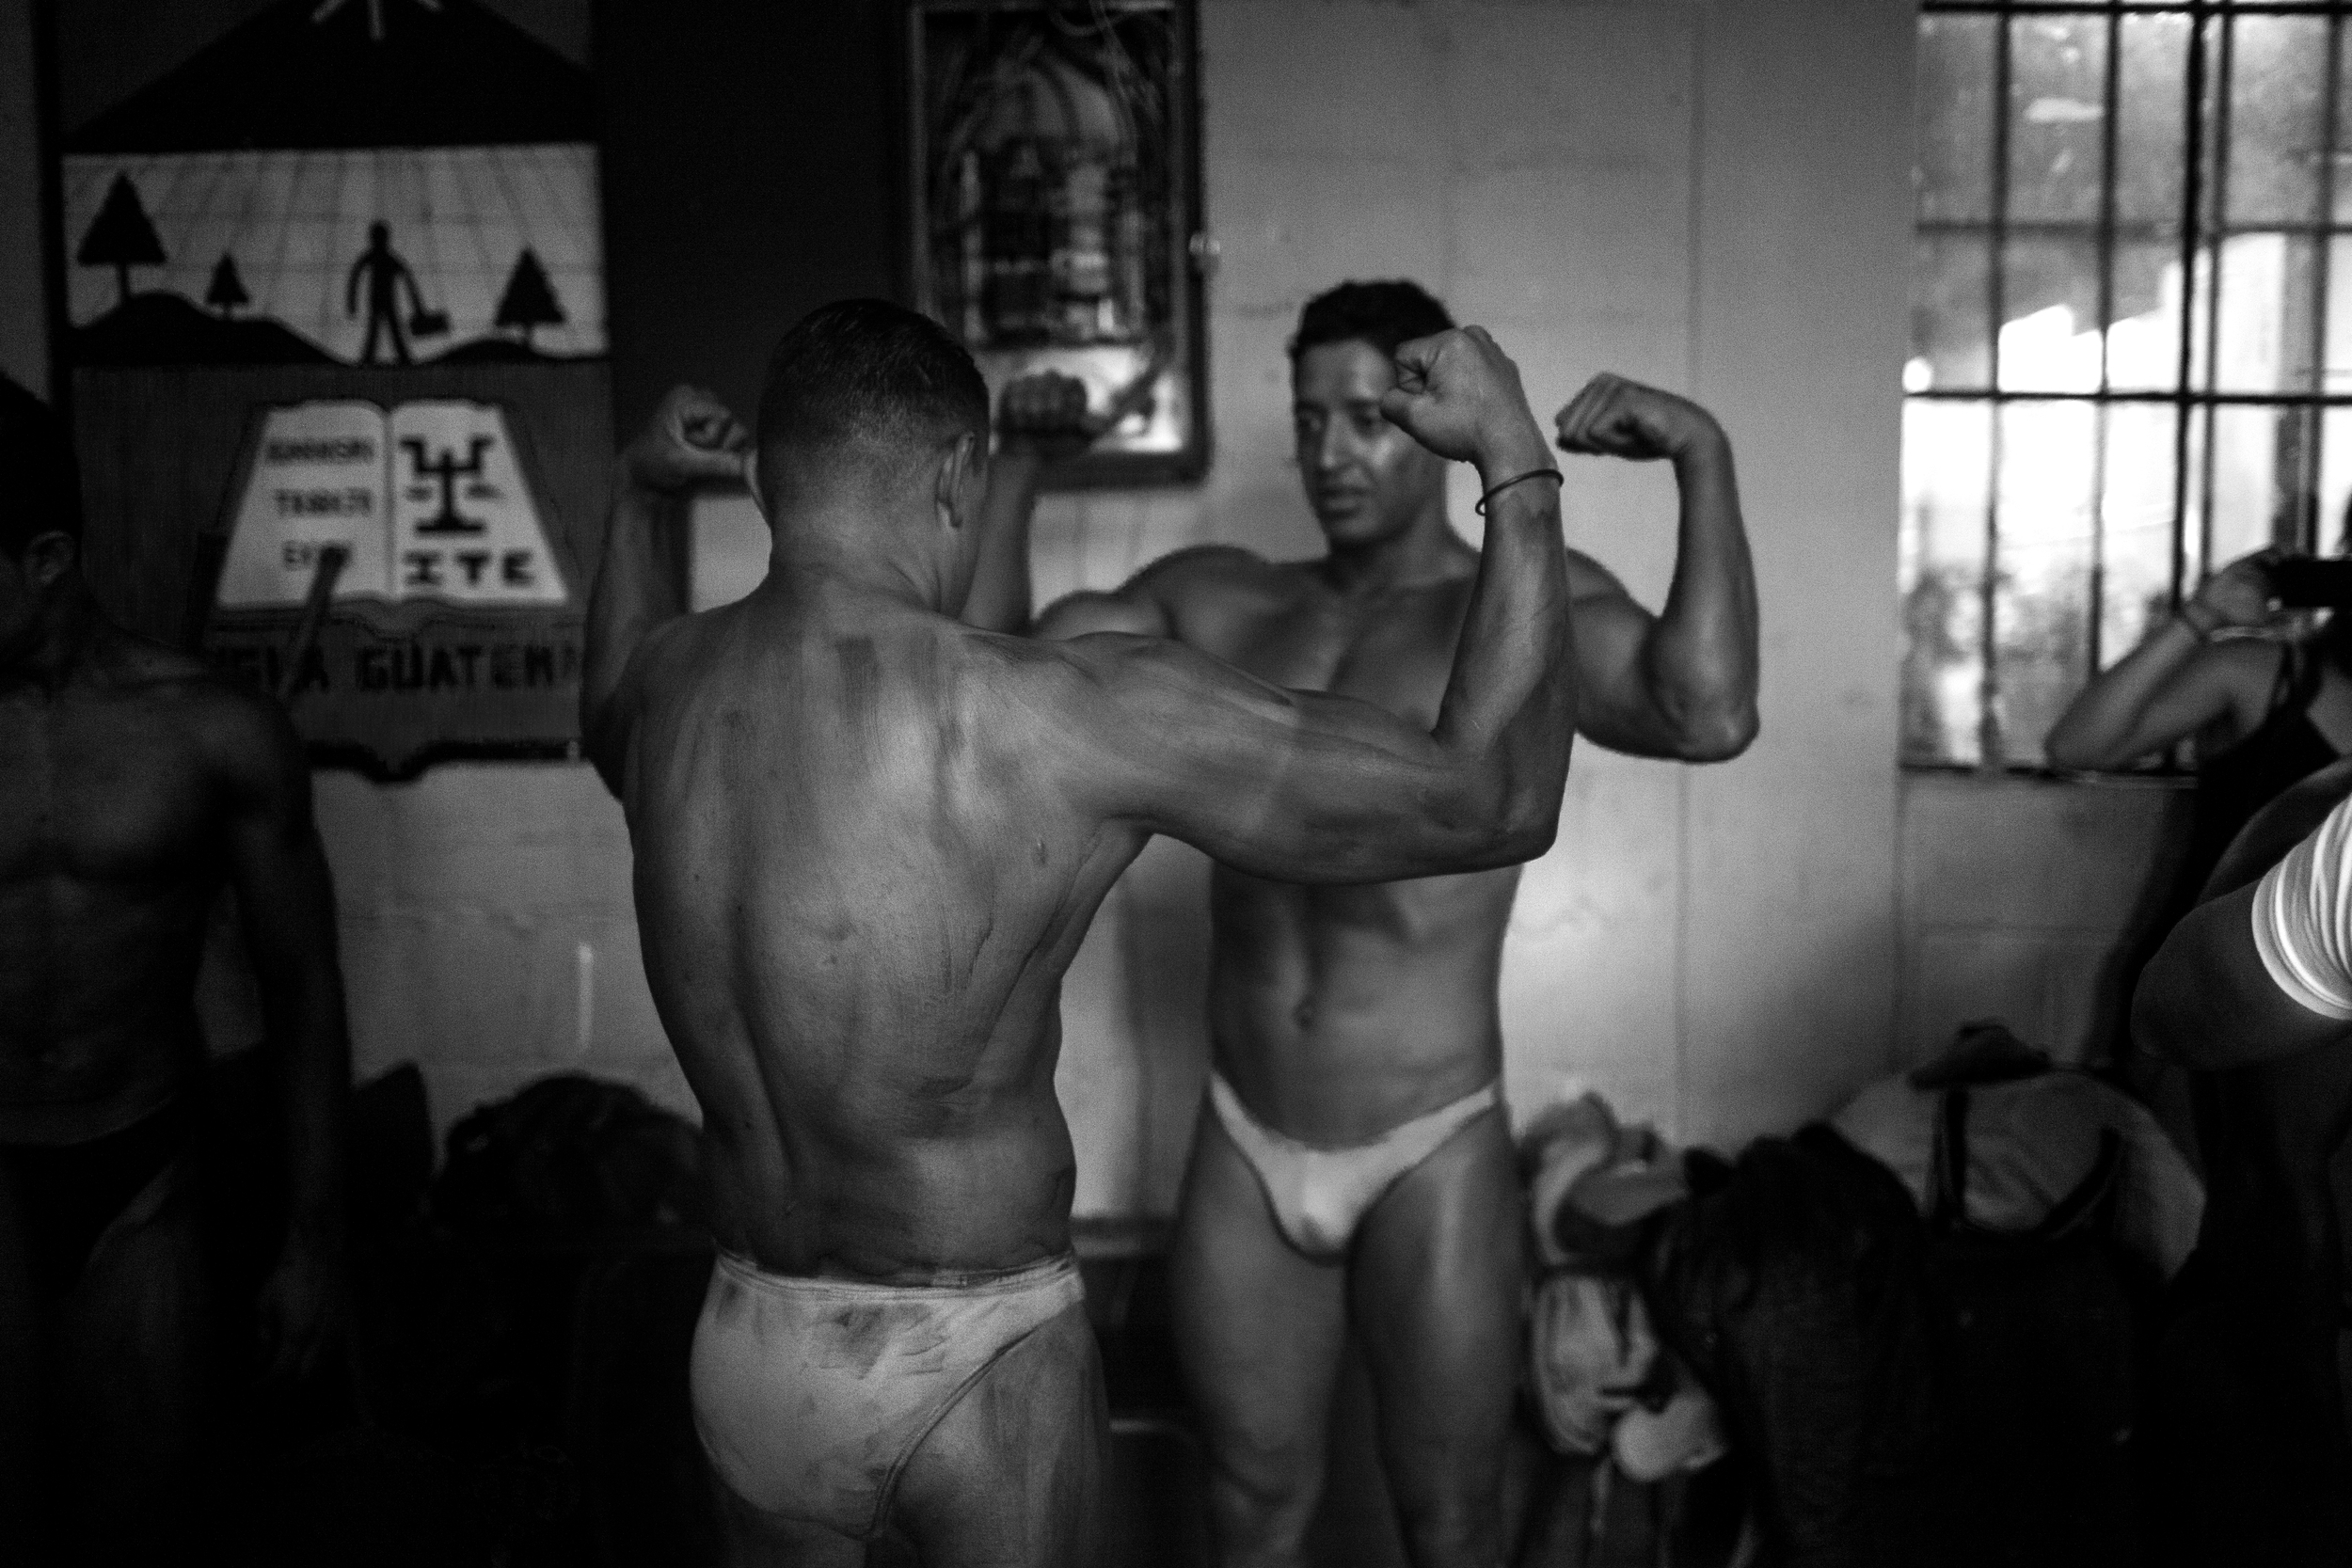 Competitors work on their poses before the Gimnasio La Fábrica bodybuilding contest in Antigua, Guatemala.